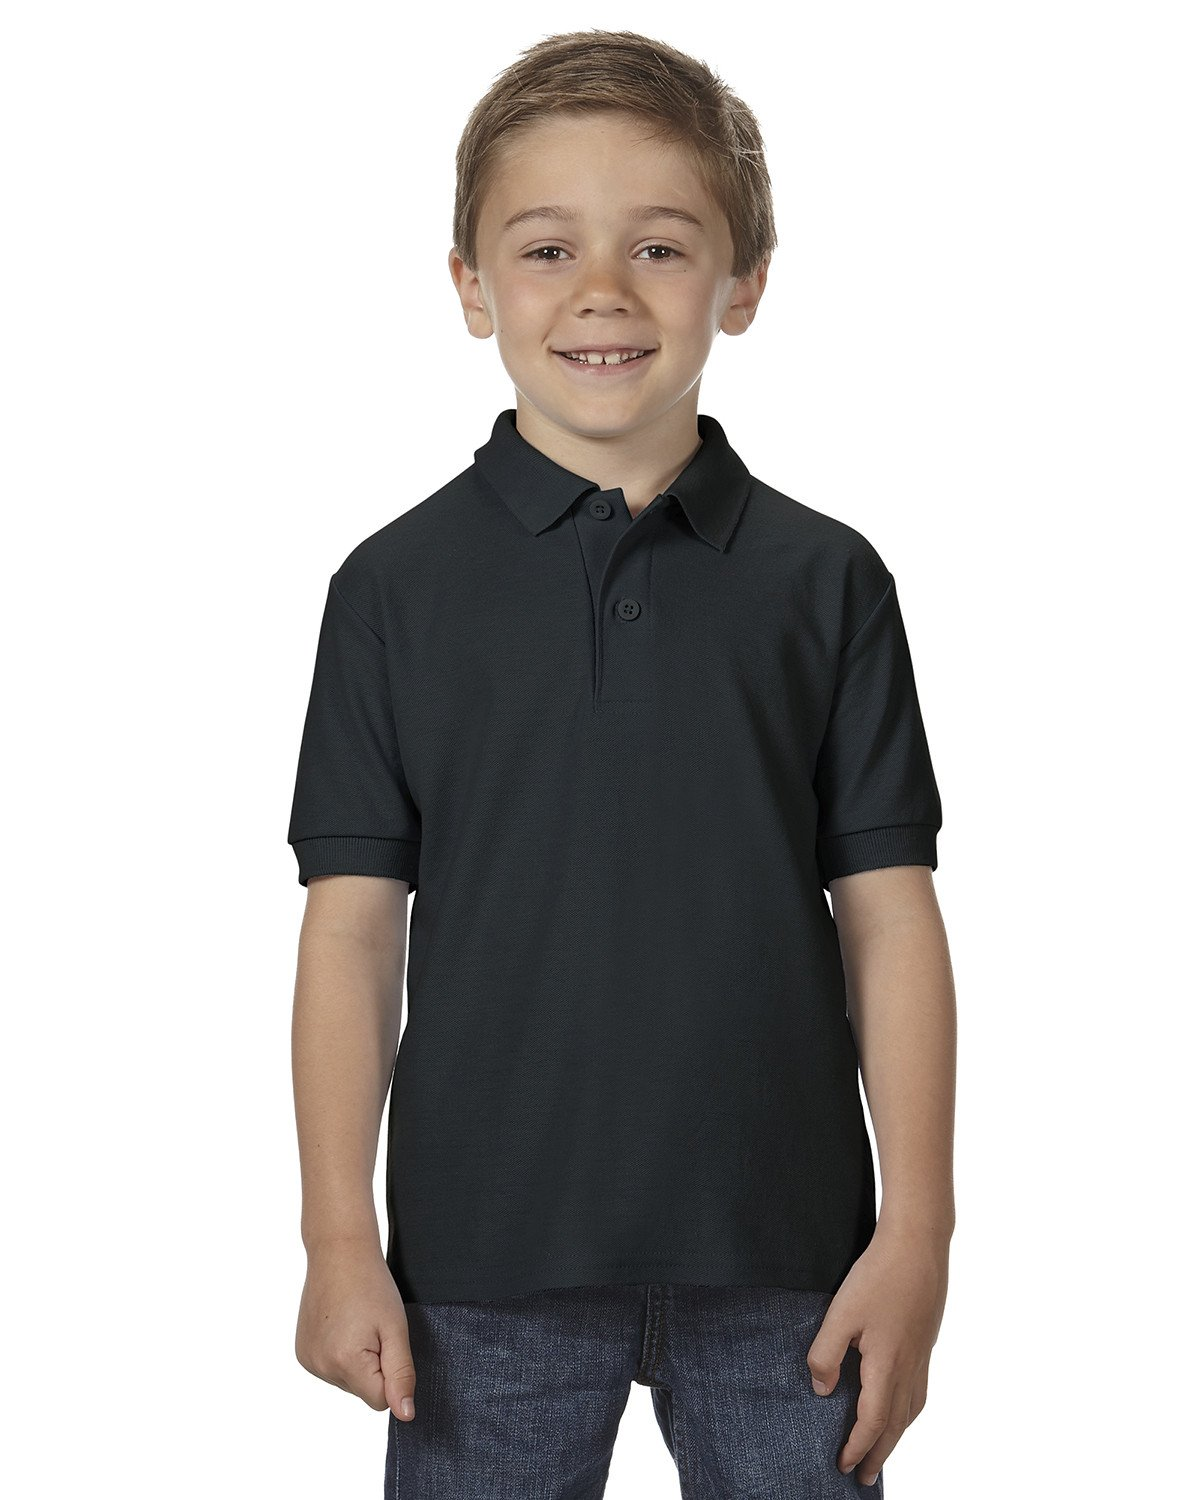 Gildan - G728B - Youth DryBlend® 6.3 oz. Double Piqué Polo